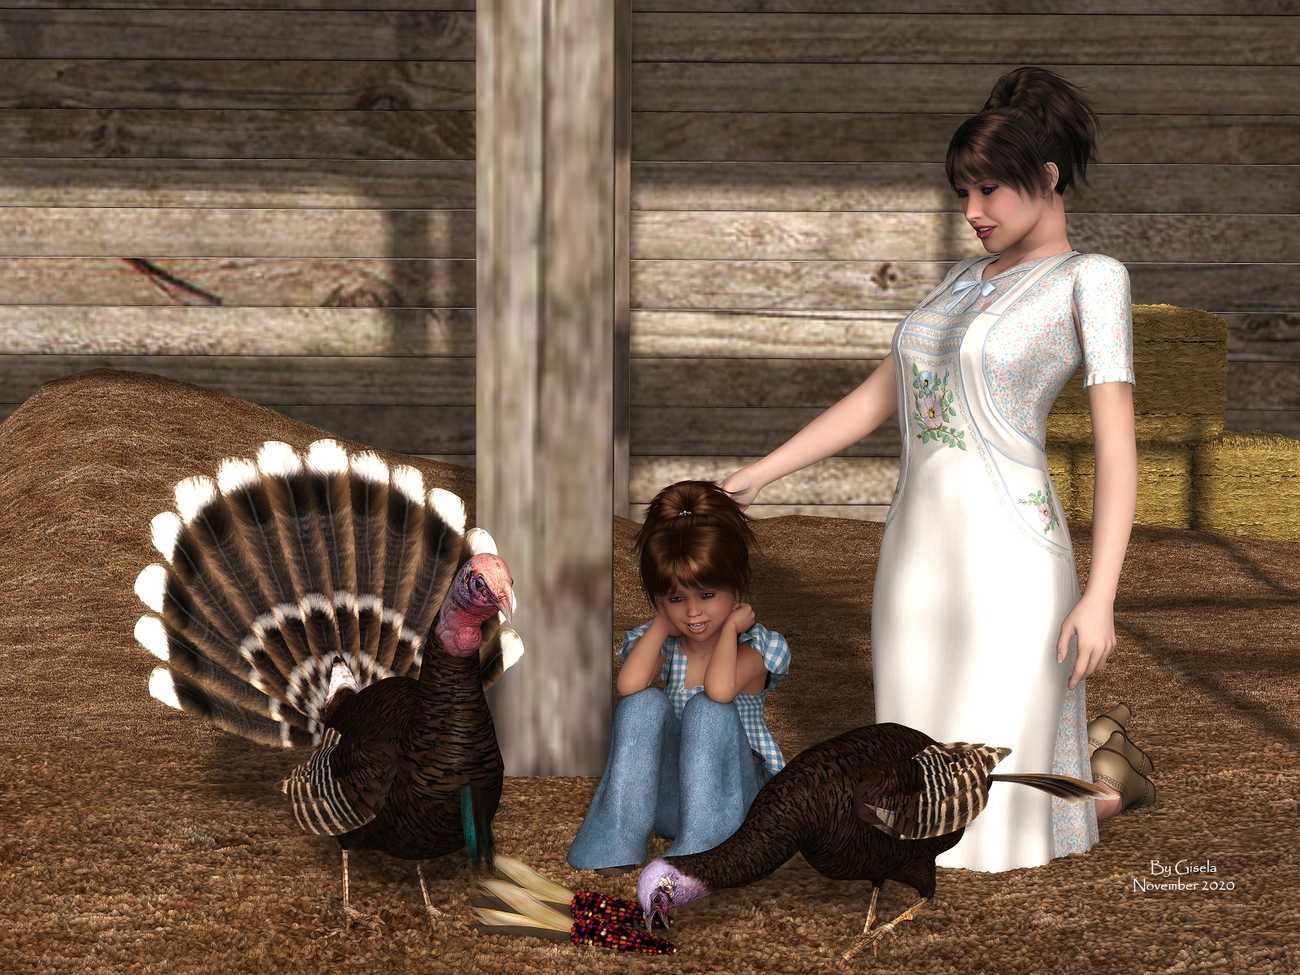 Happy Thanksgiving by Gisela